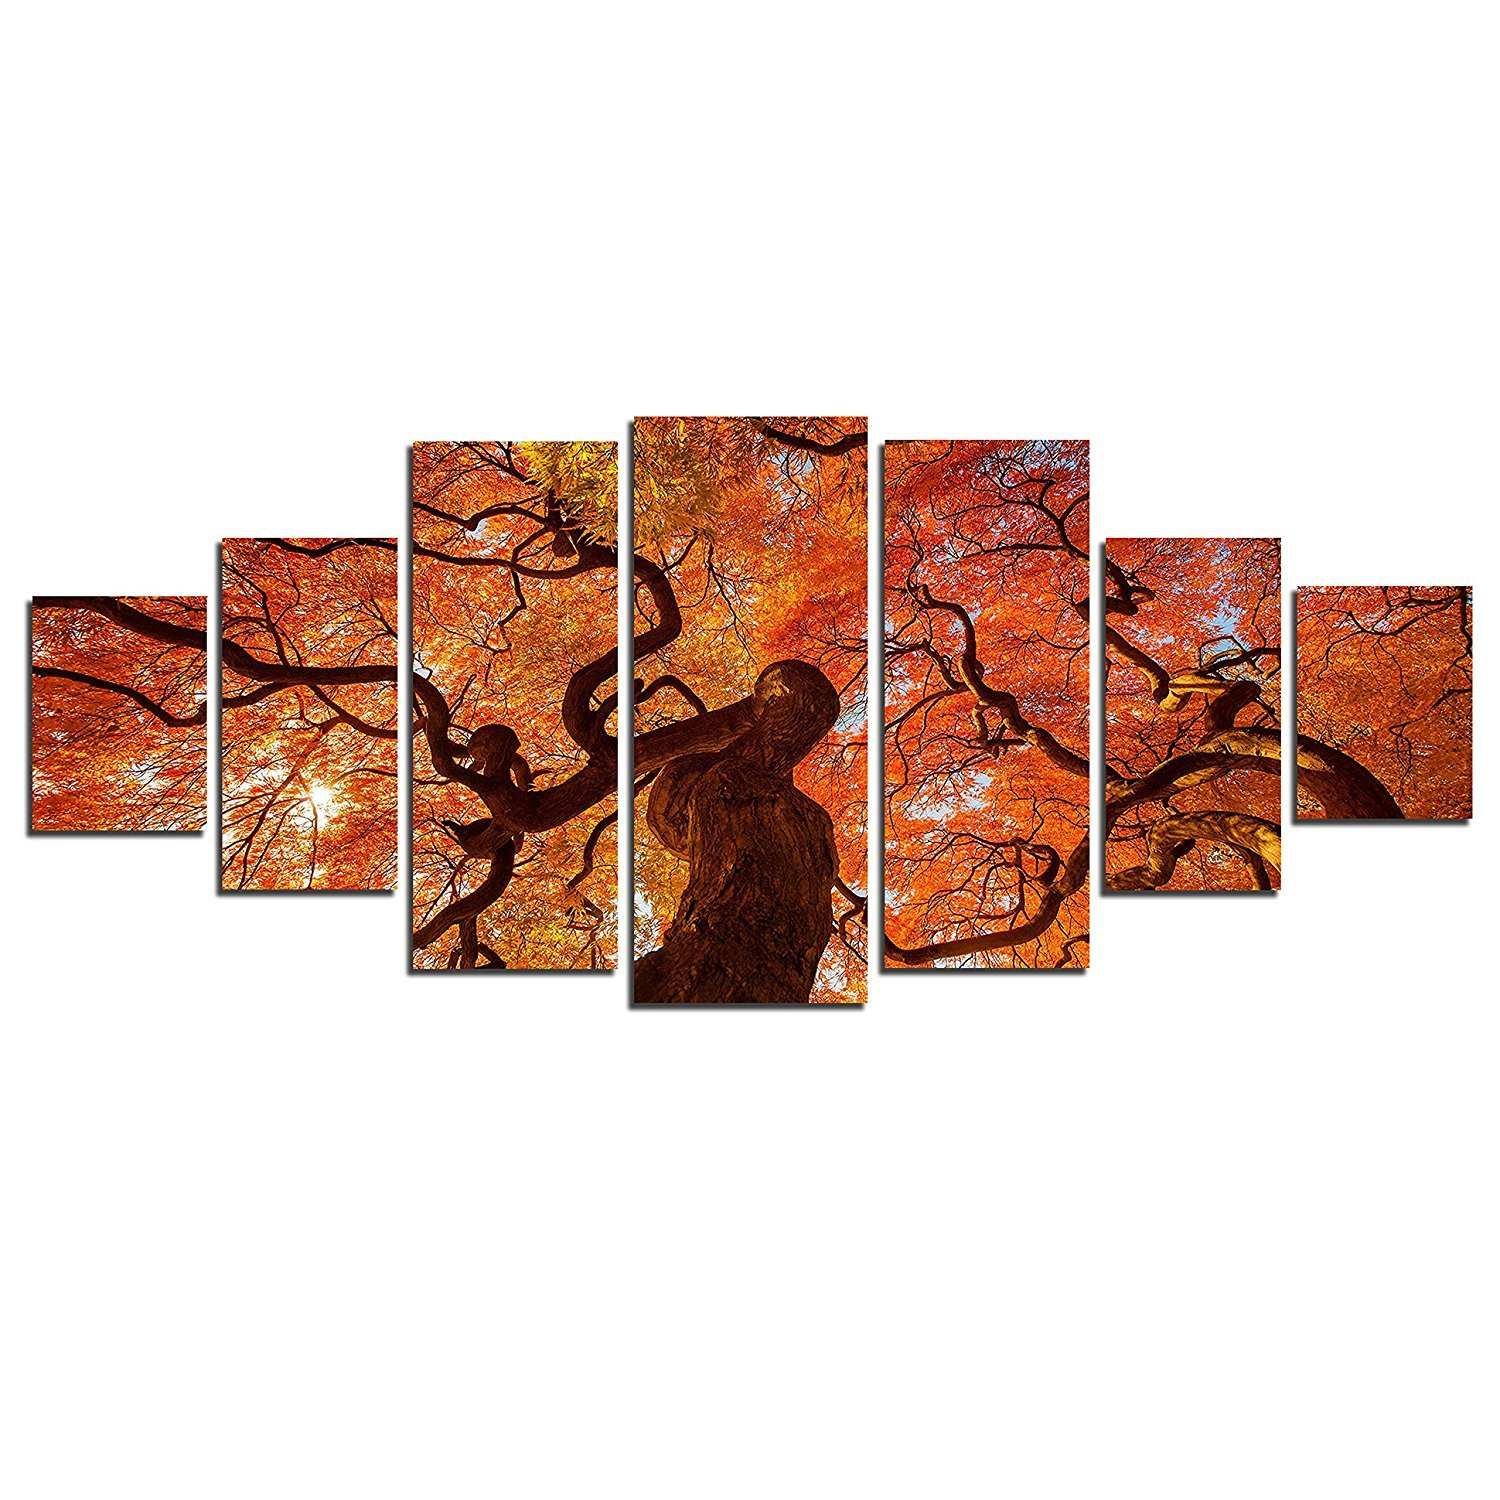 Startonight Glow in the Dark, Huge Canvas Wall Art Maple In Autumn, Home Decor, Dual View Surprise Artwork Modern Framed Wall Art Set of 7 Panels Total 39.37 x 94.49 inch by Startonight